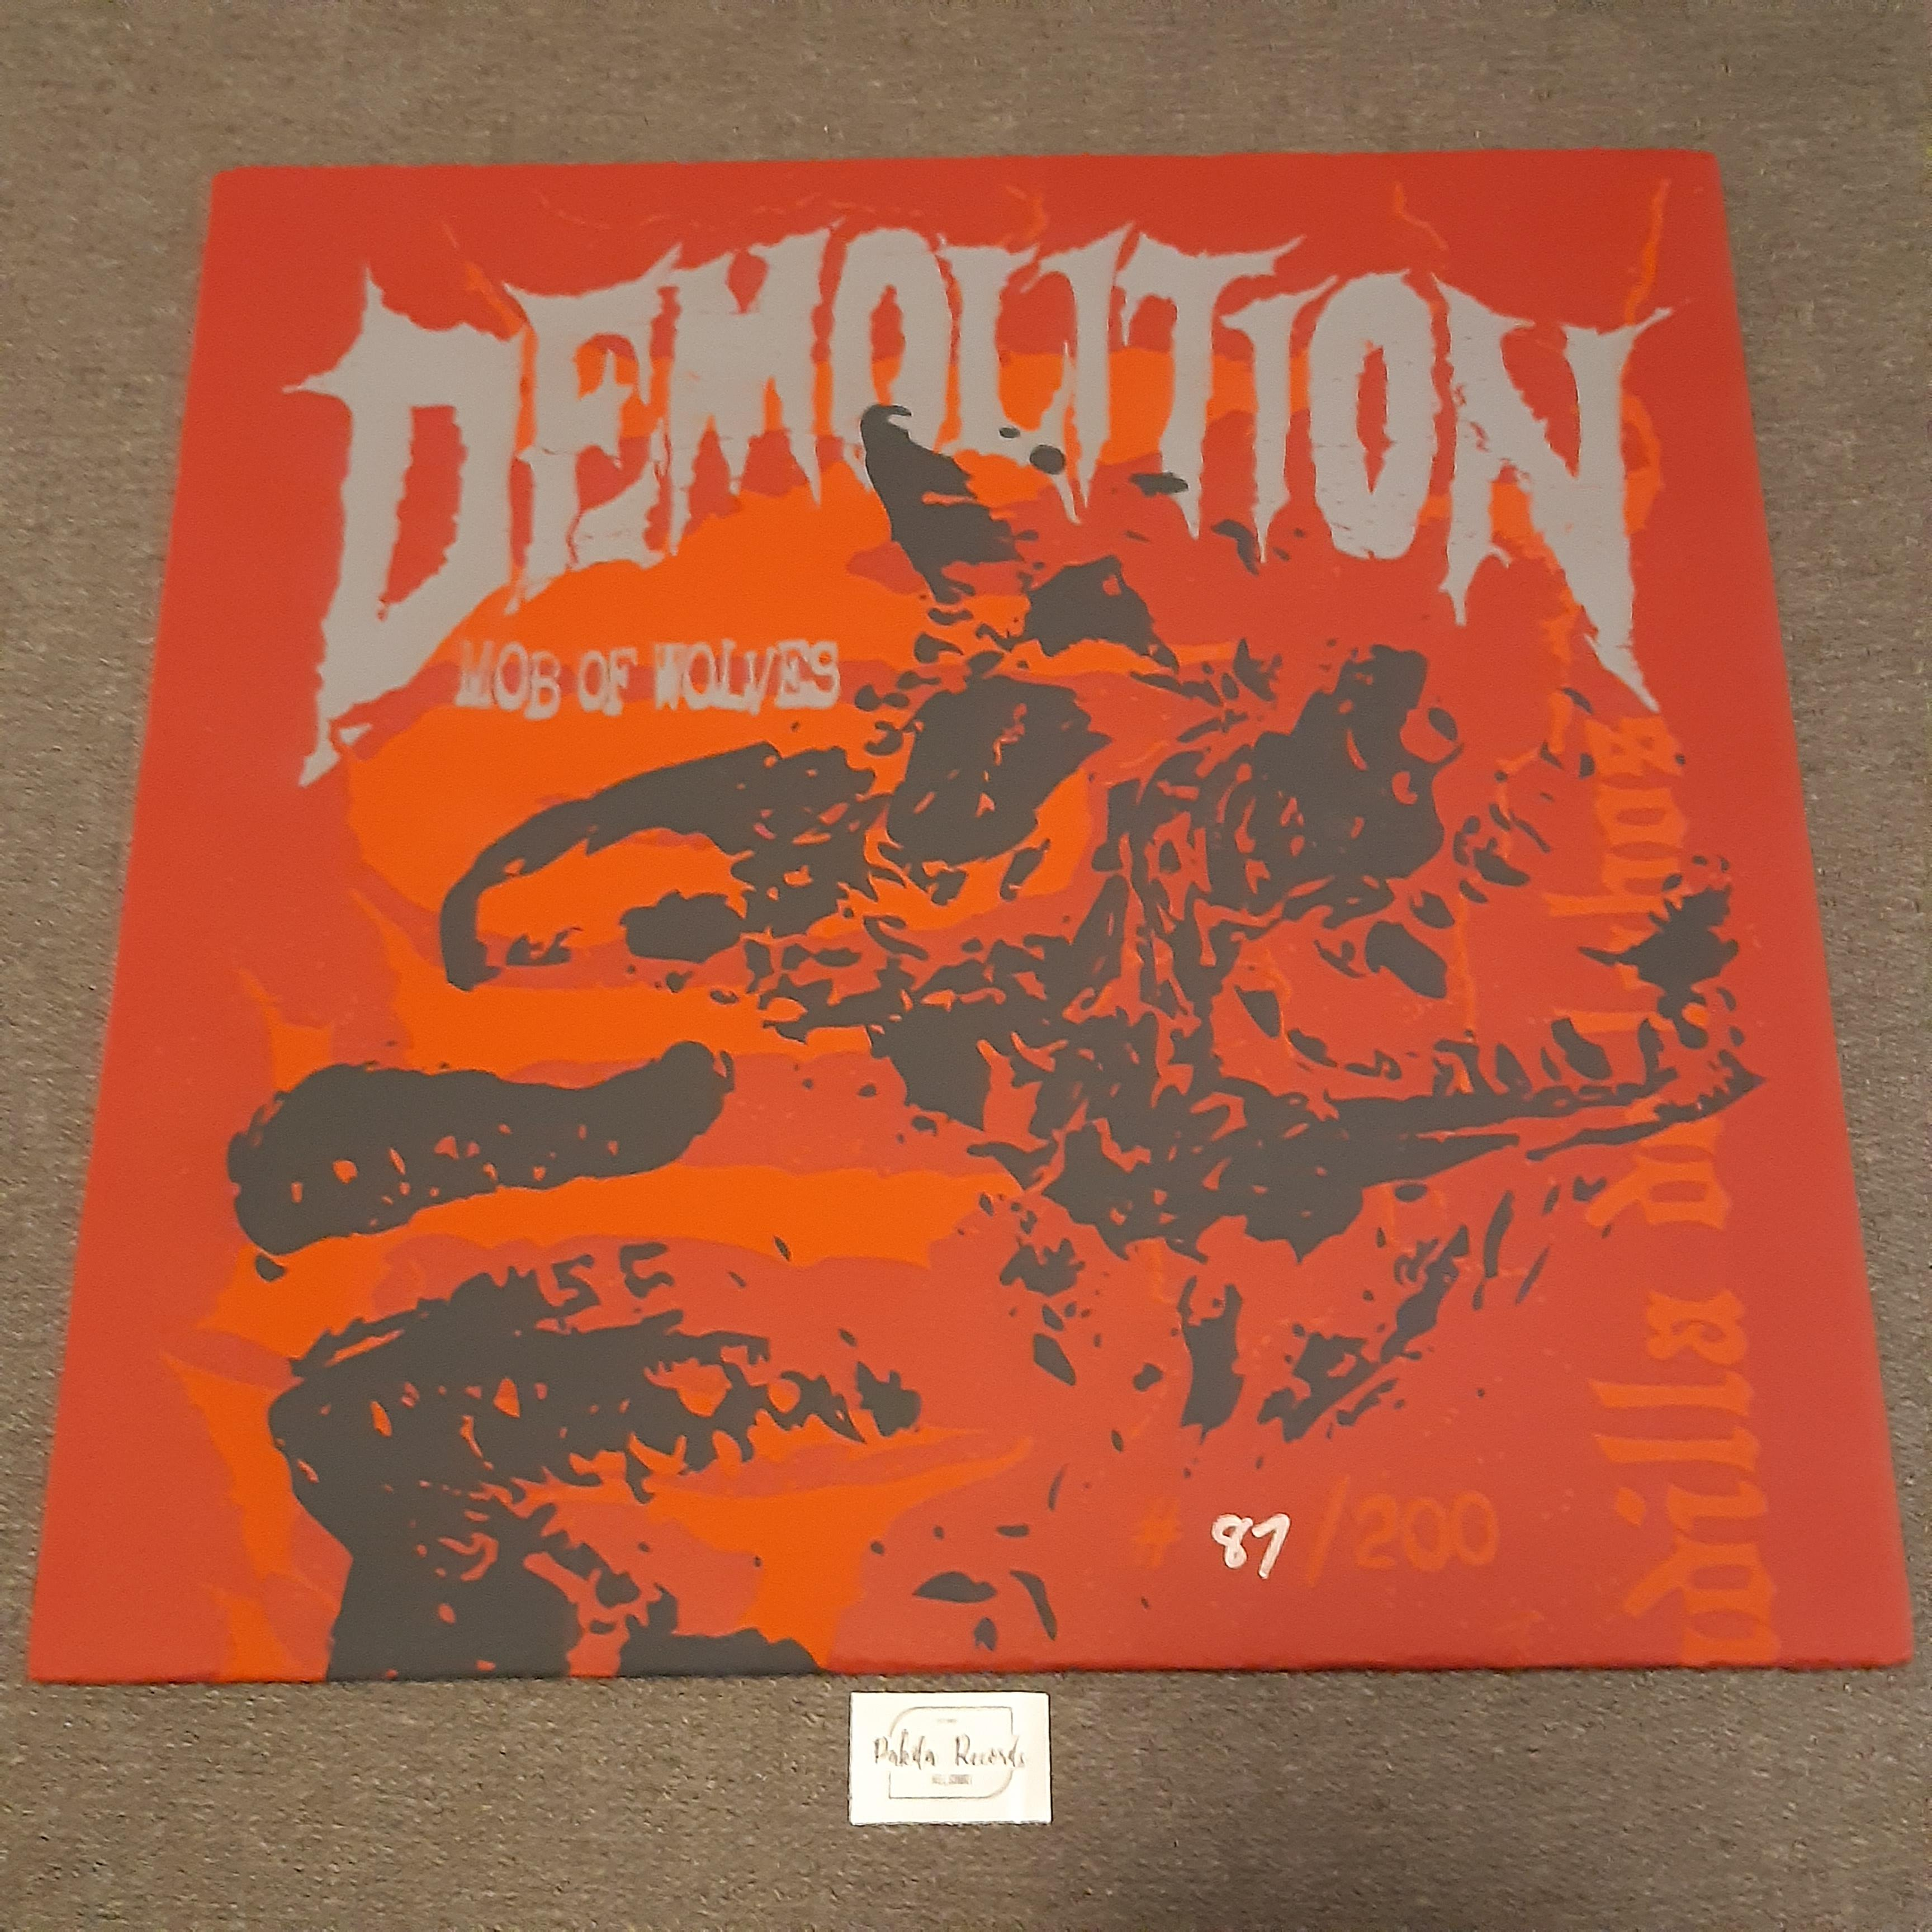 "Demolition - Mob Of Wolves - EP 12"" Limited ed. (Käytetty)"